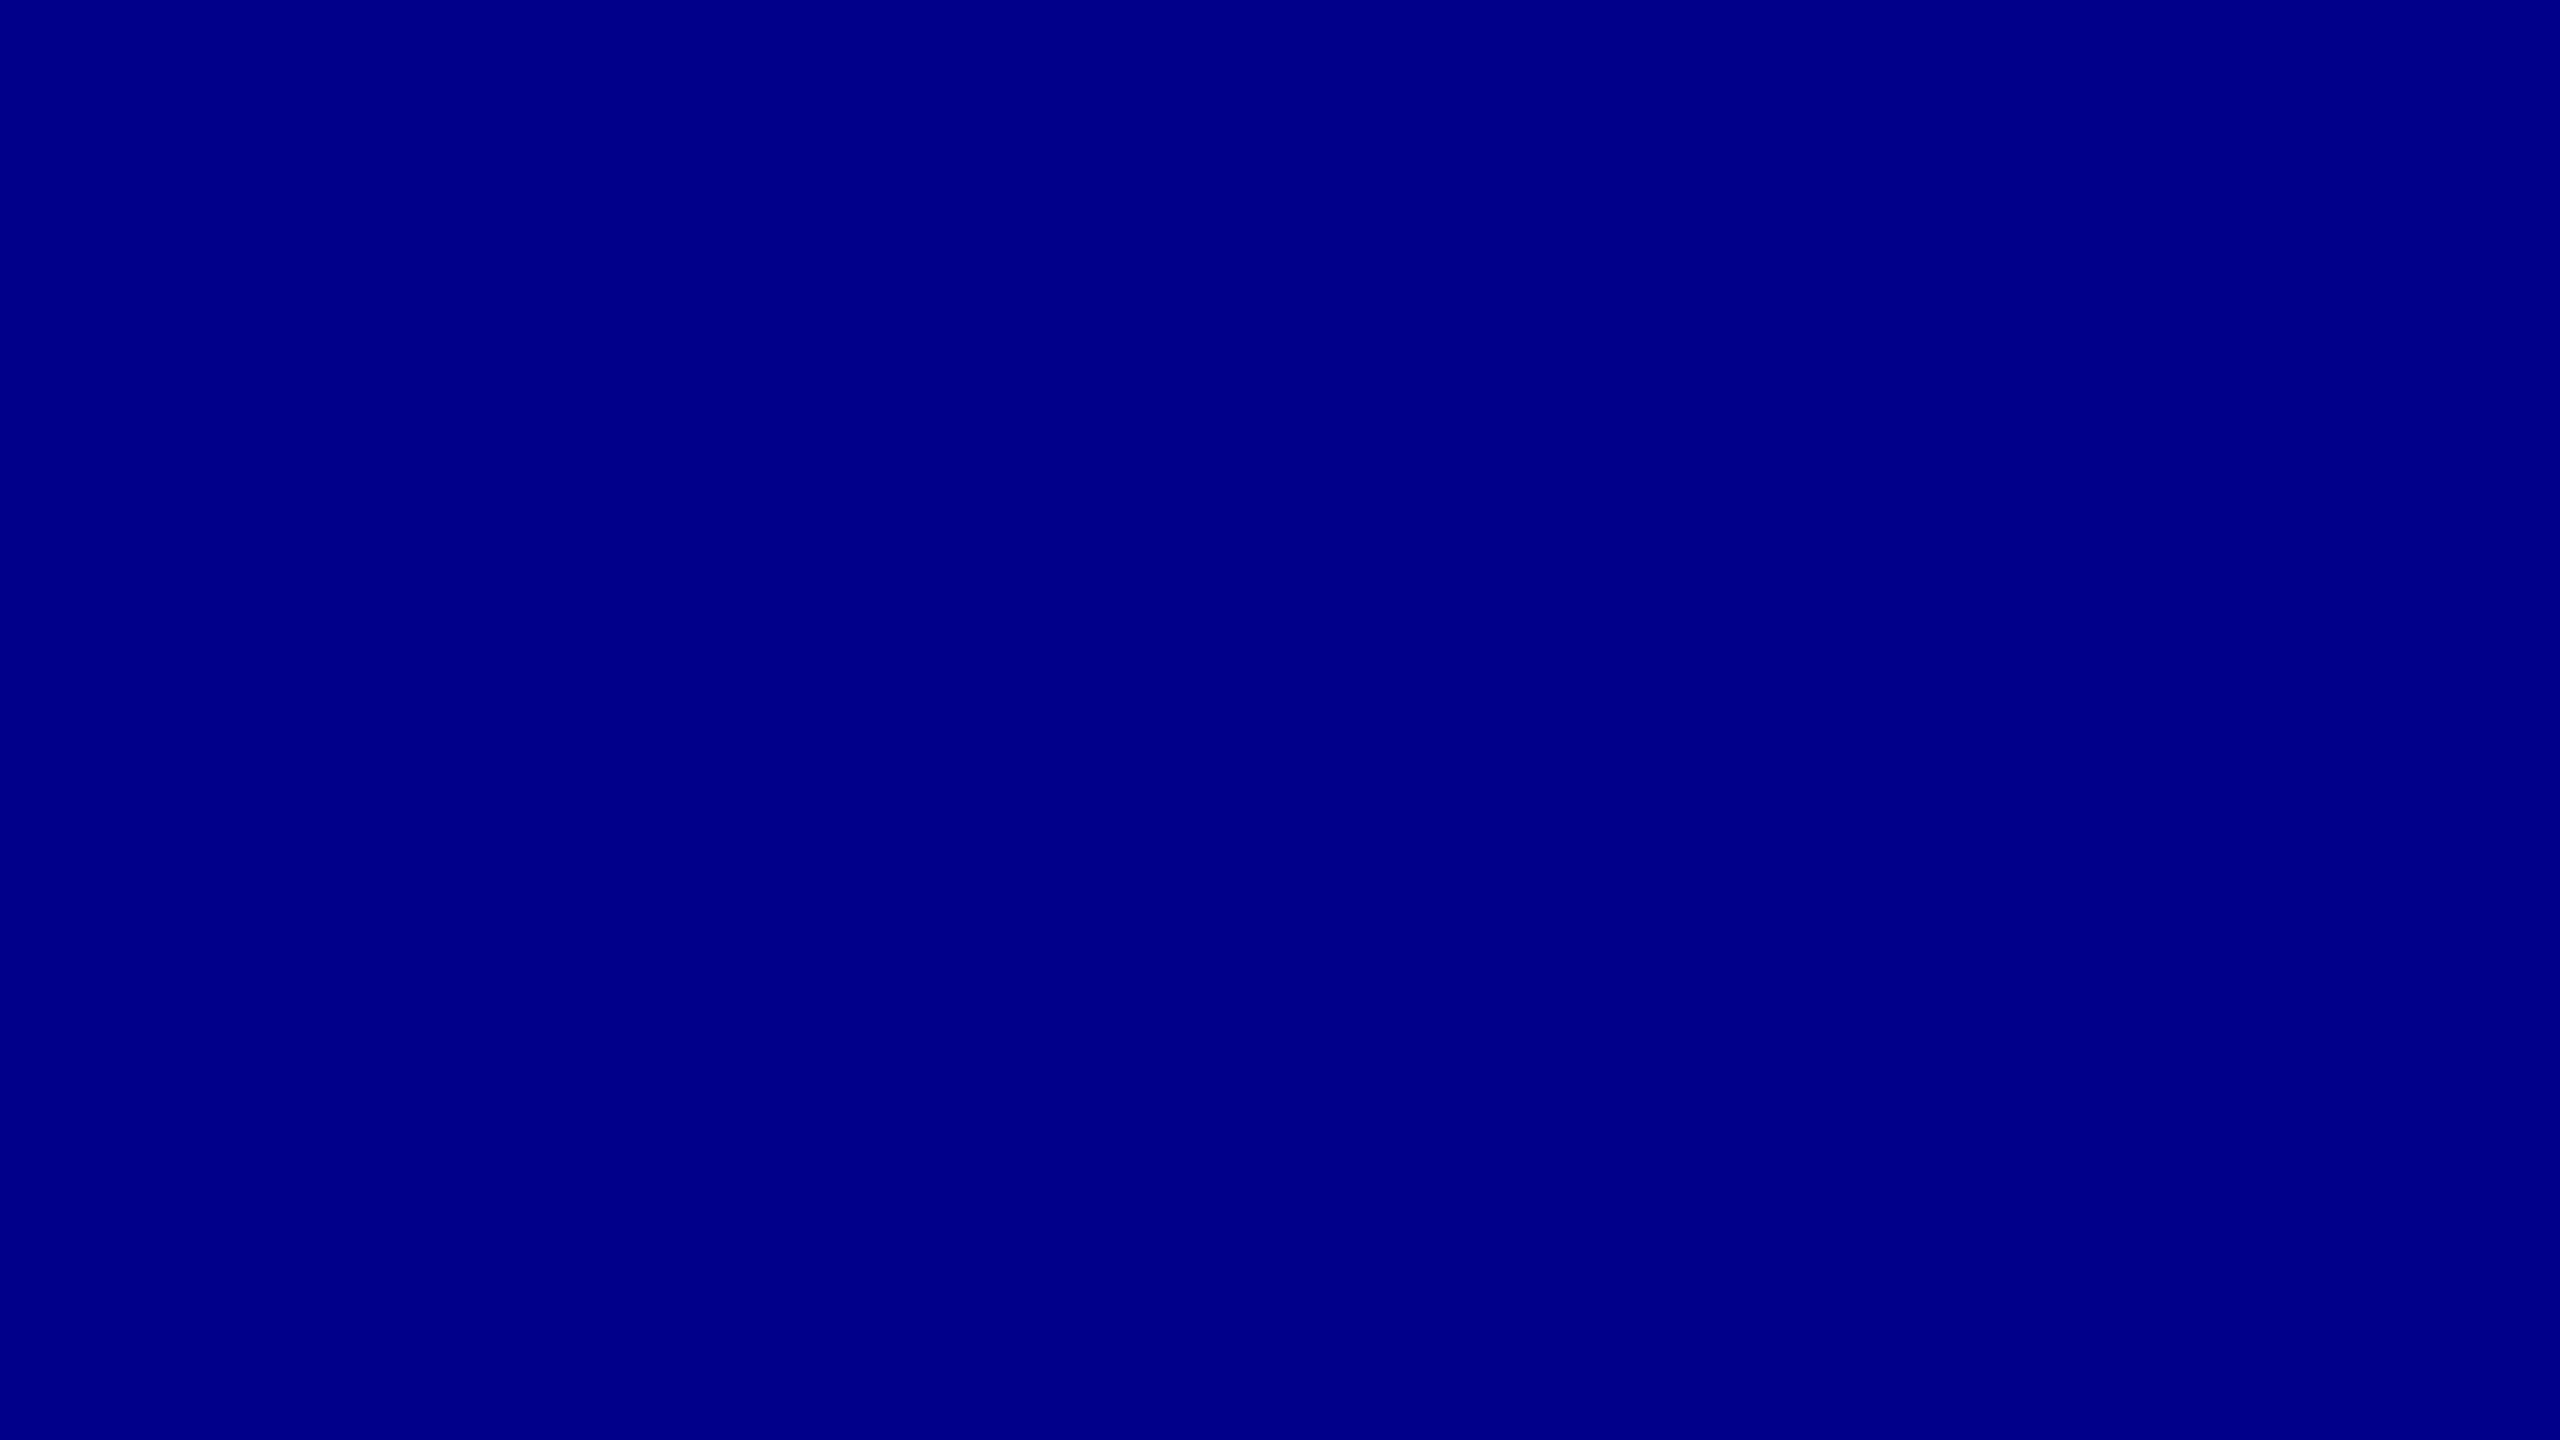 2560x1440 Dark Blue Solid Color Background